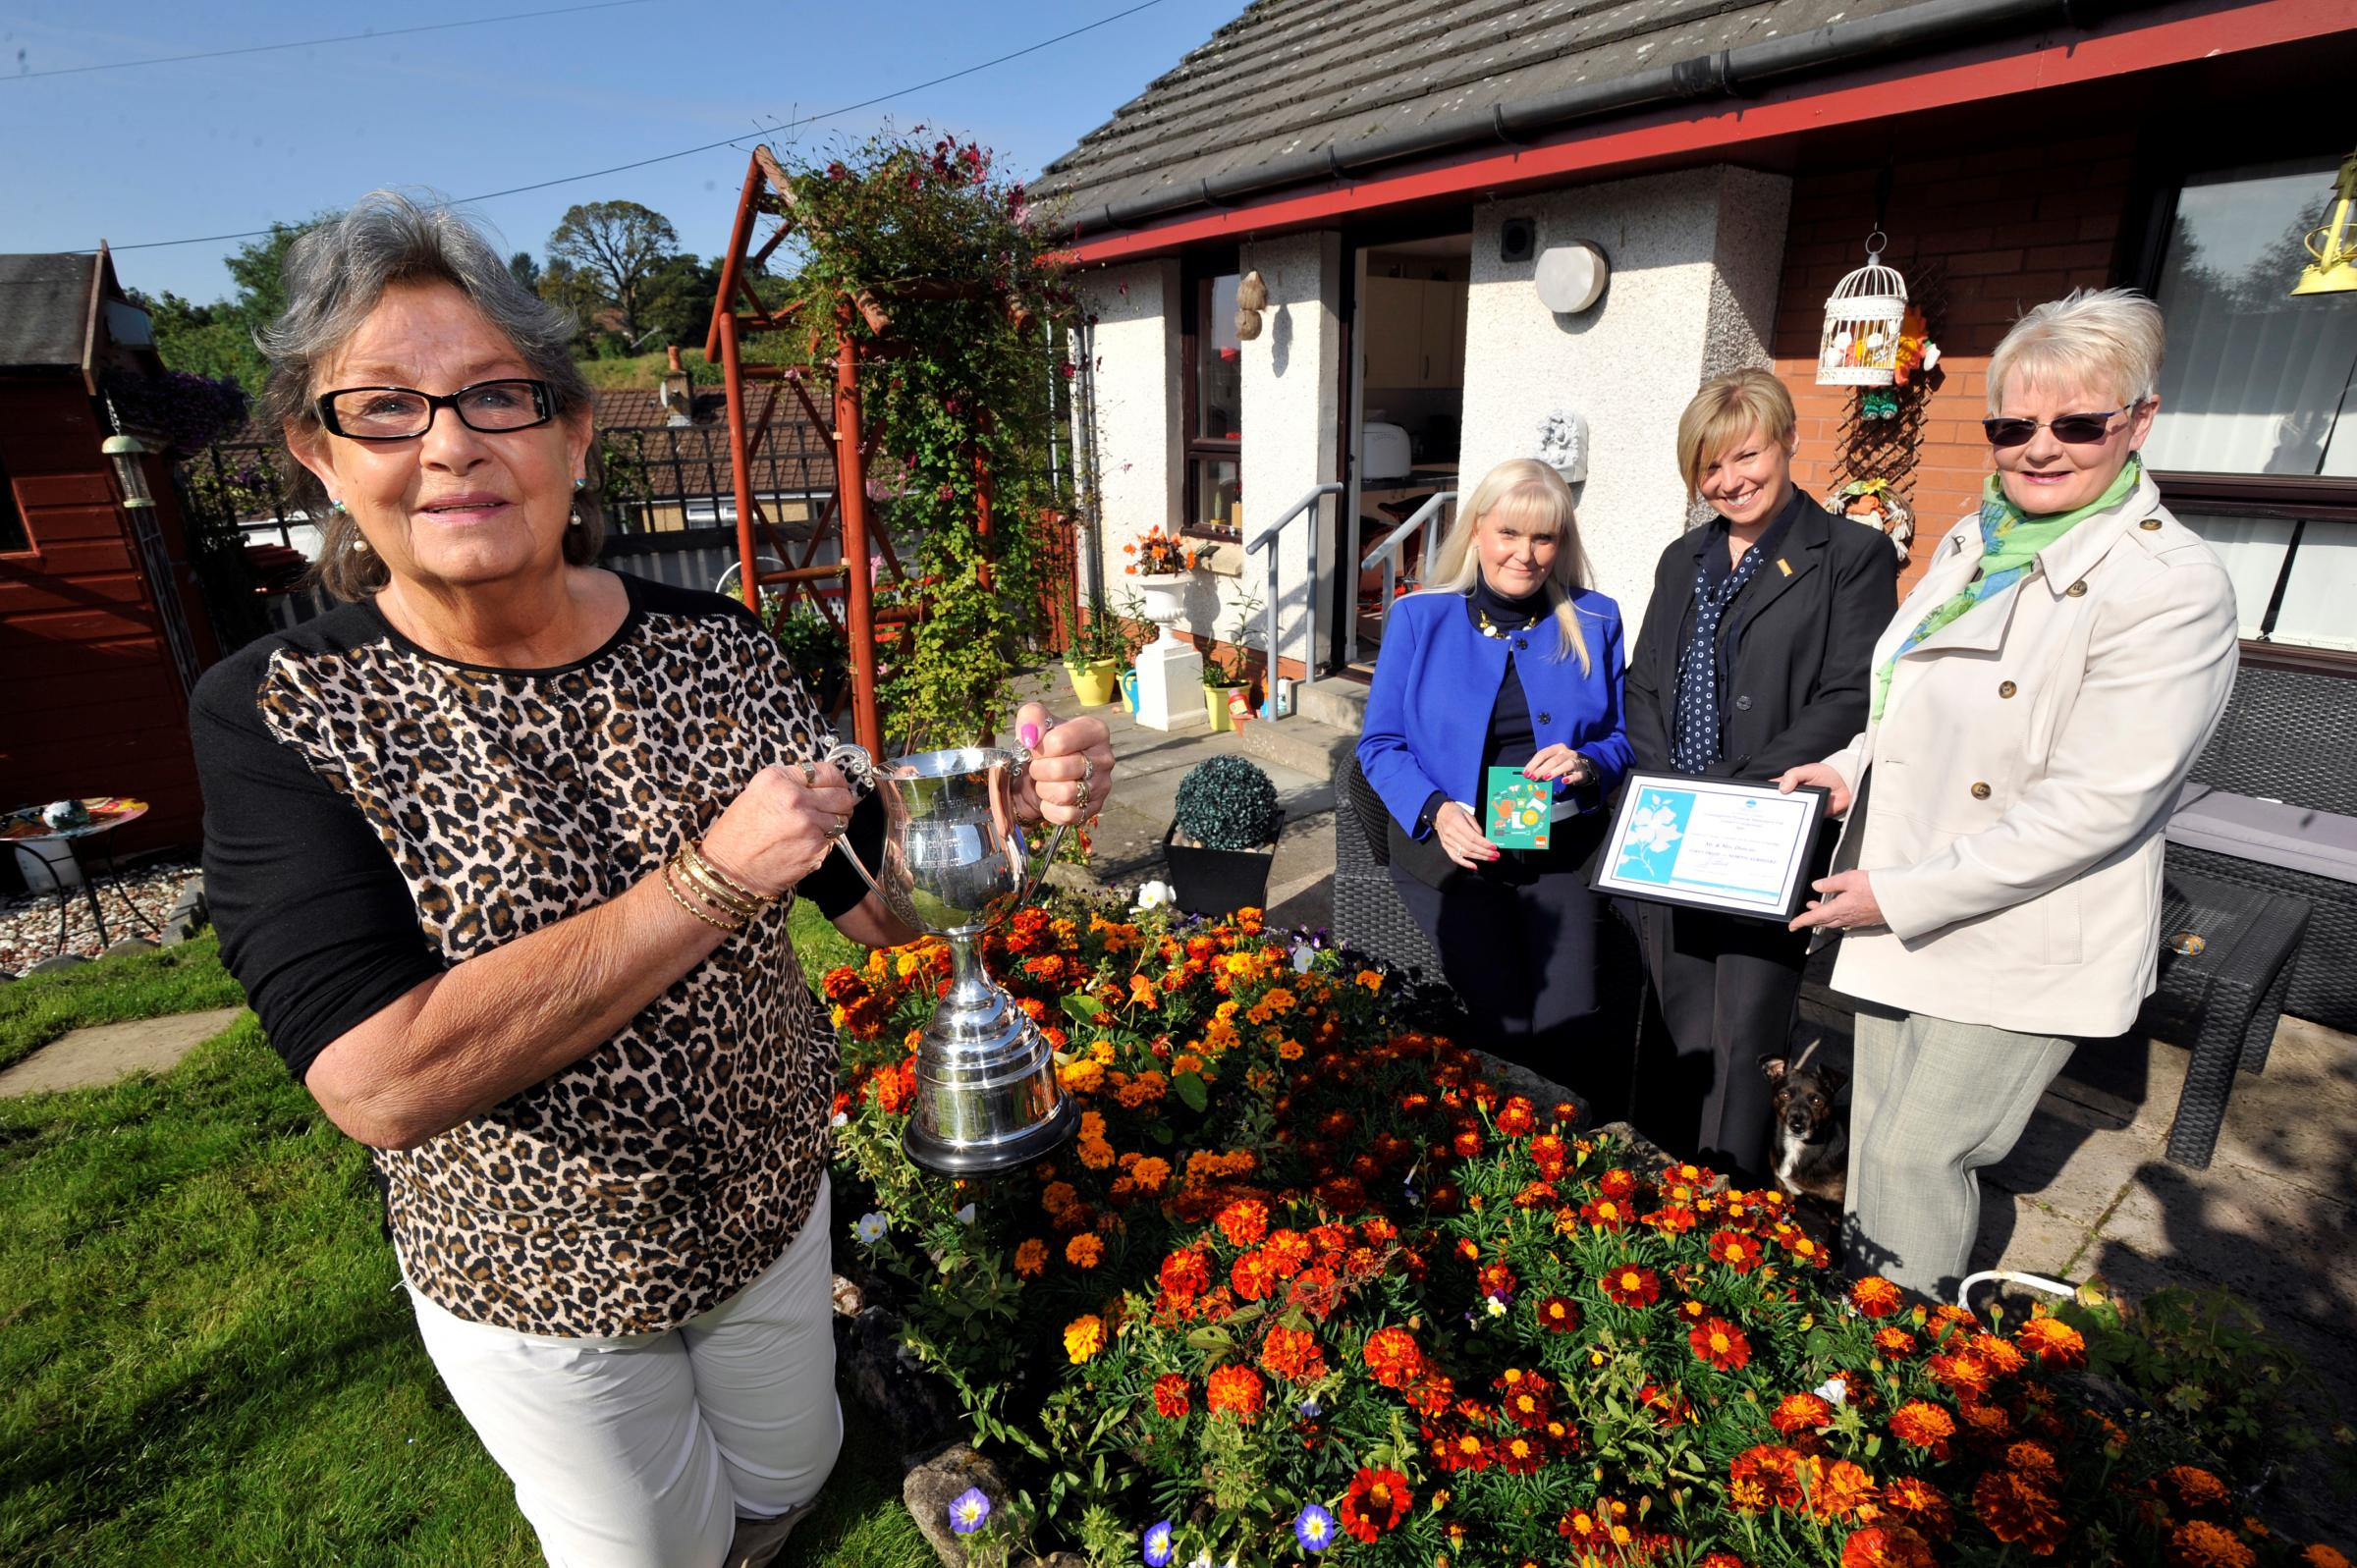 Dalry's Andrea takes the trophy in the CHA garden competition